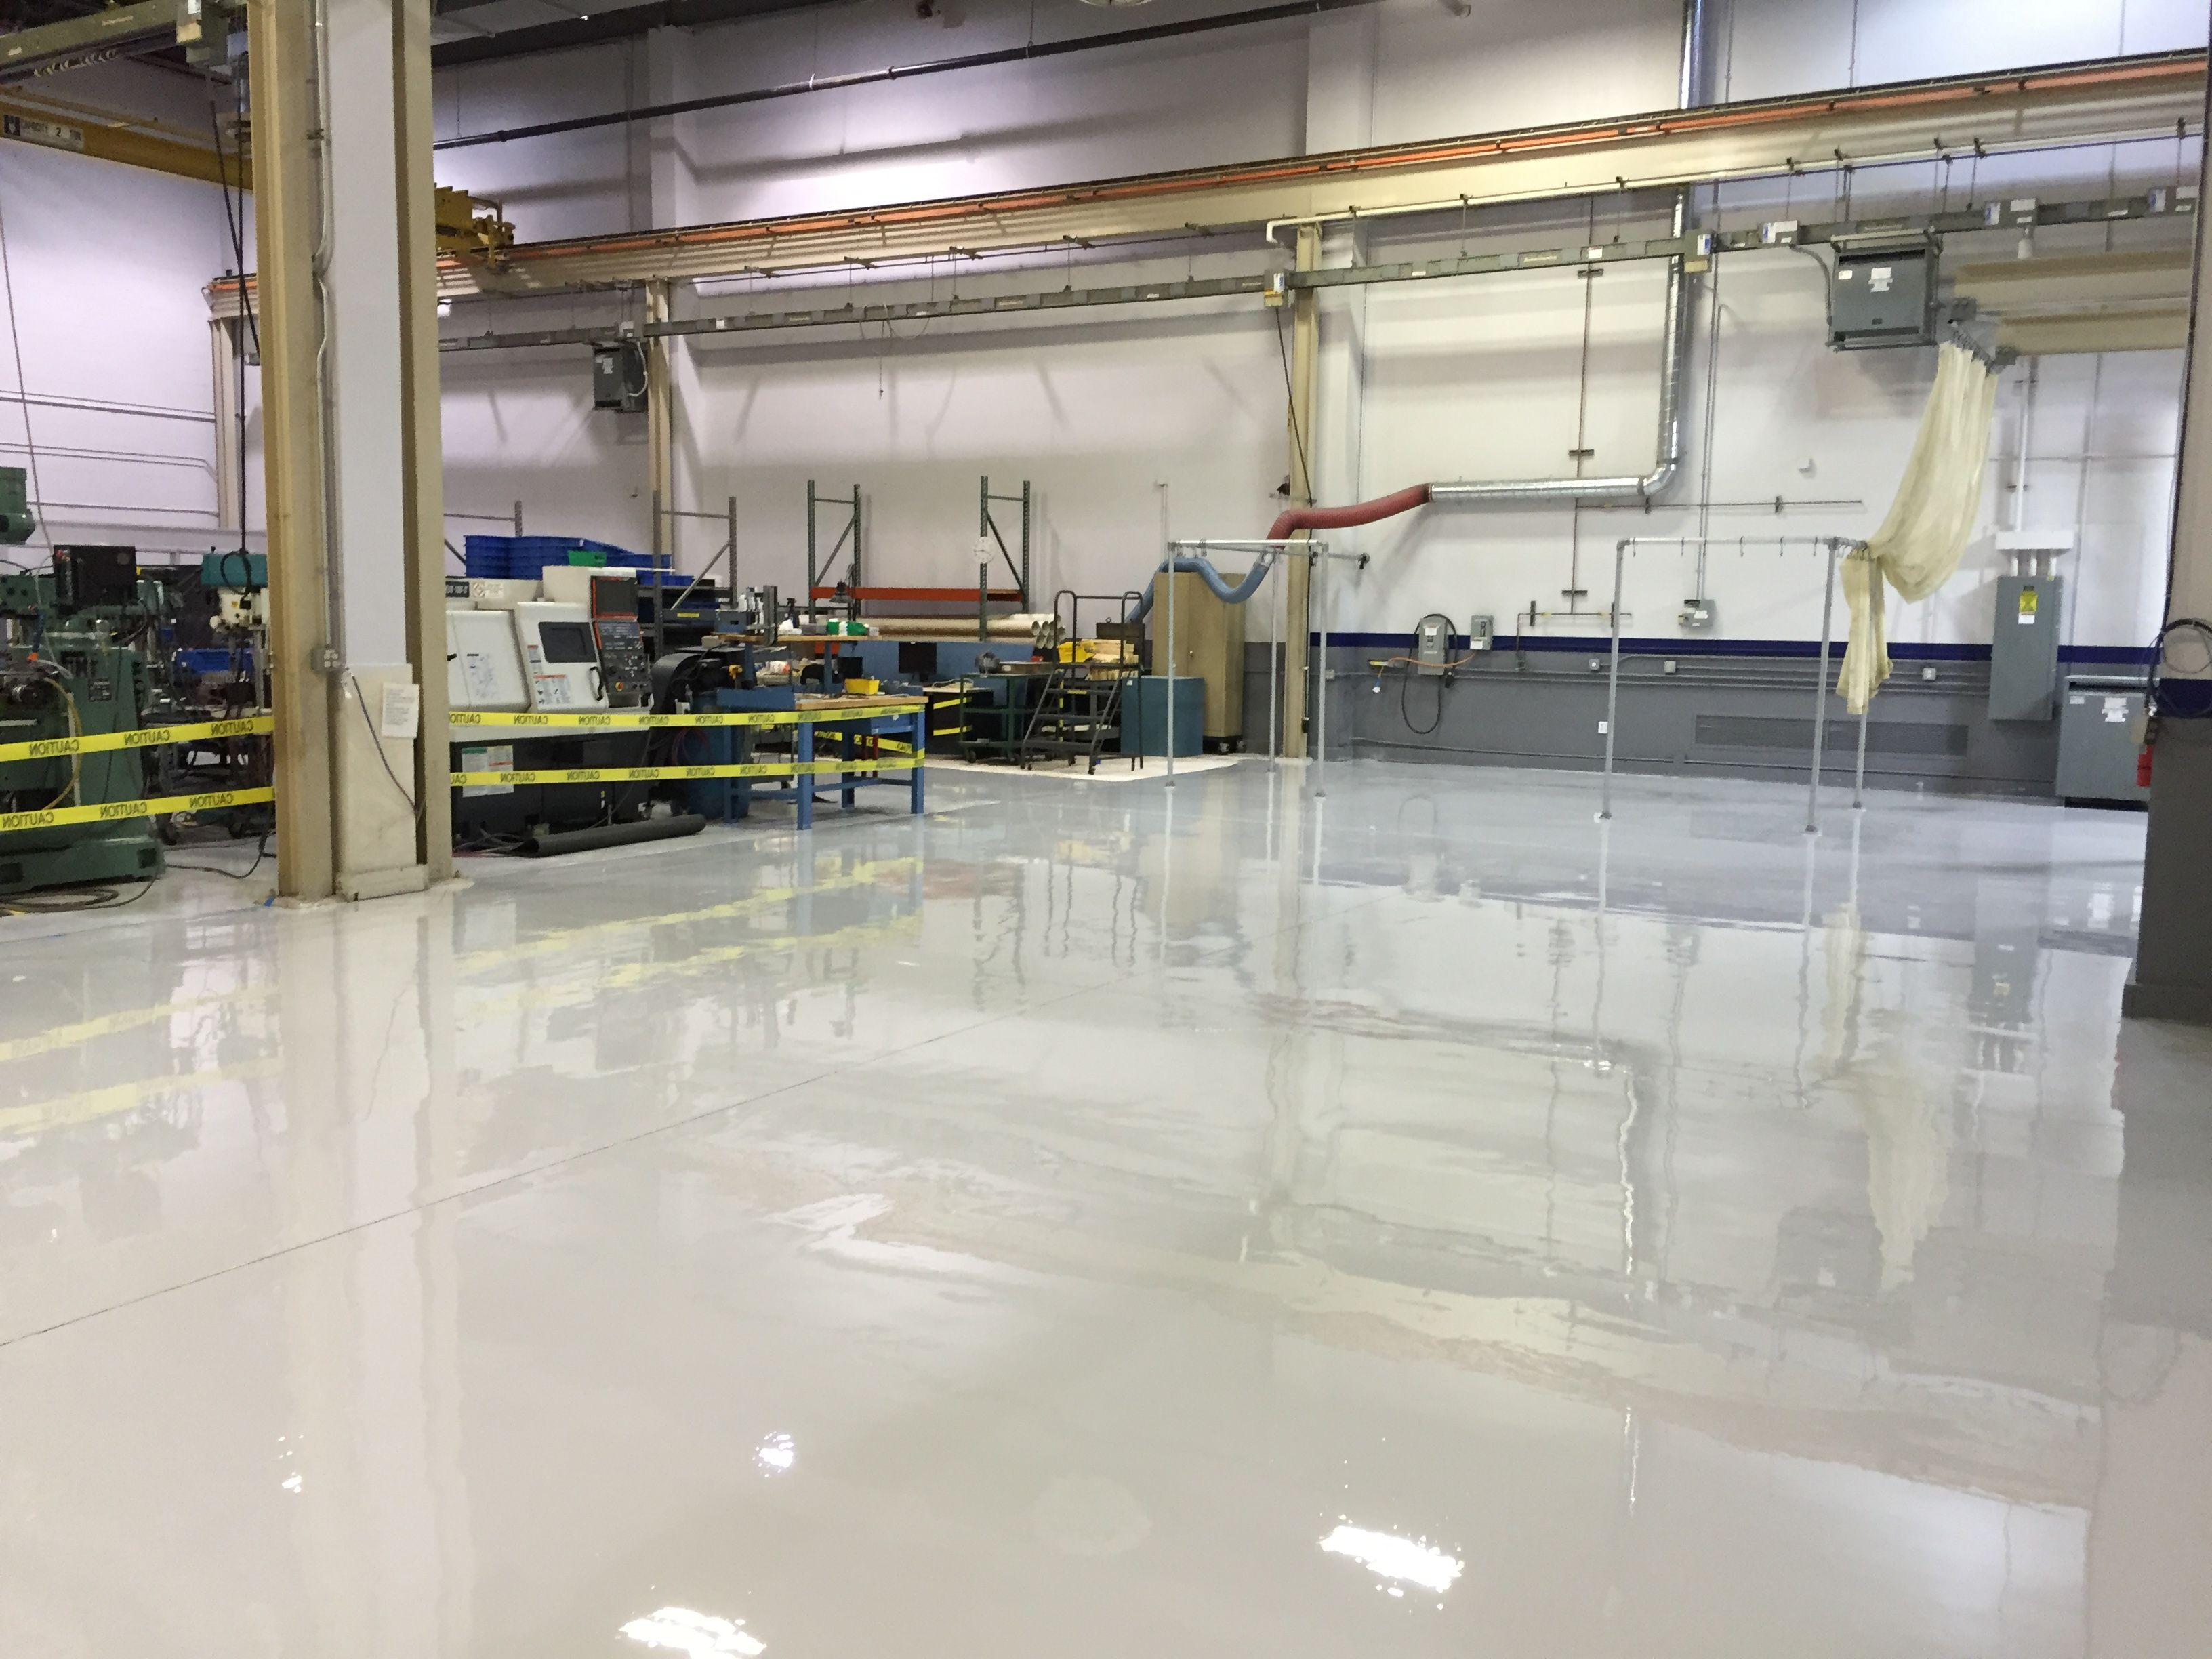 Ucrete Polyurethane Flooring Get To Know More About Ep Floors Corp Recognized As A Single Source Manufactu Concrete Floor Coatings Flooring Epoxy Floor